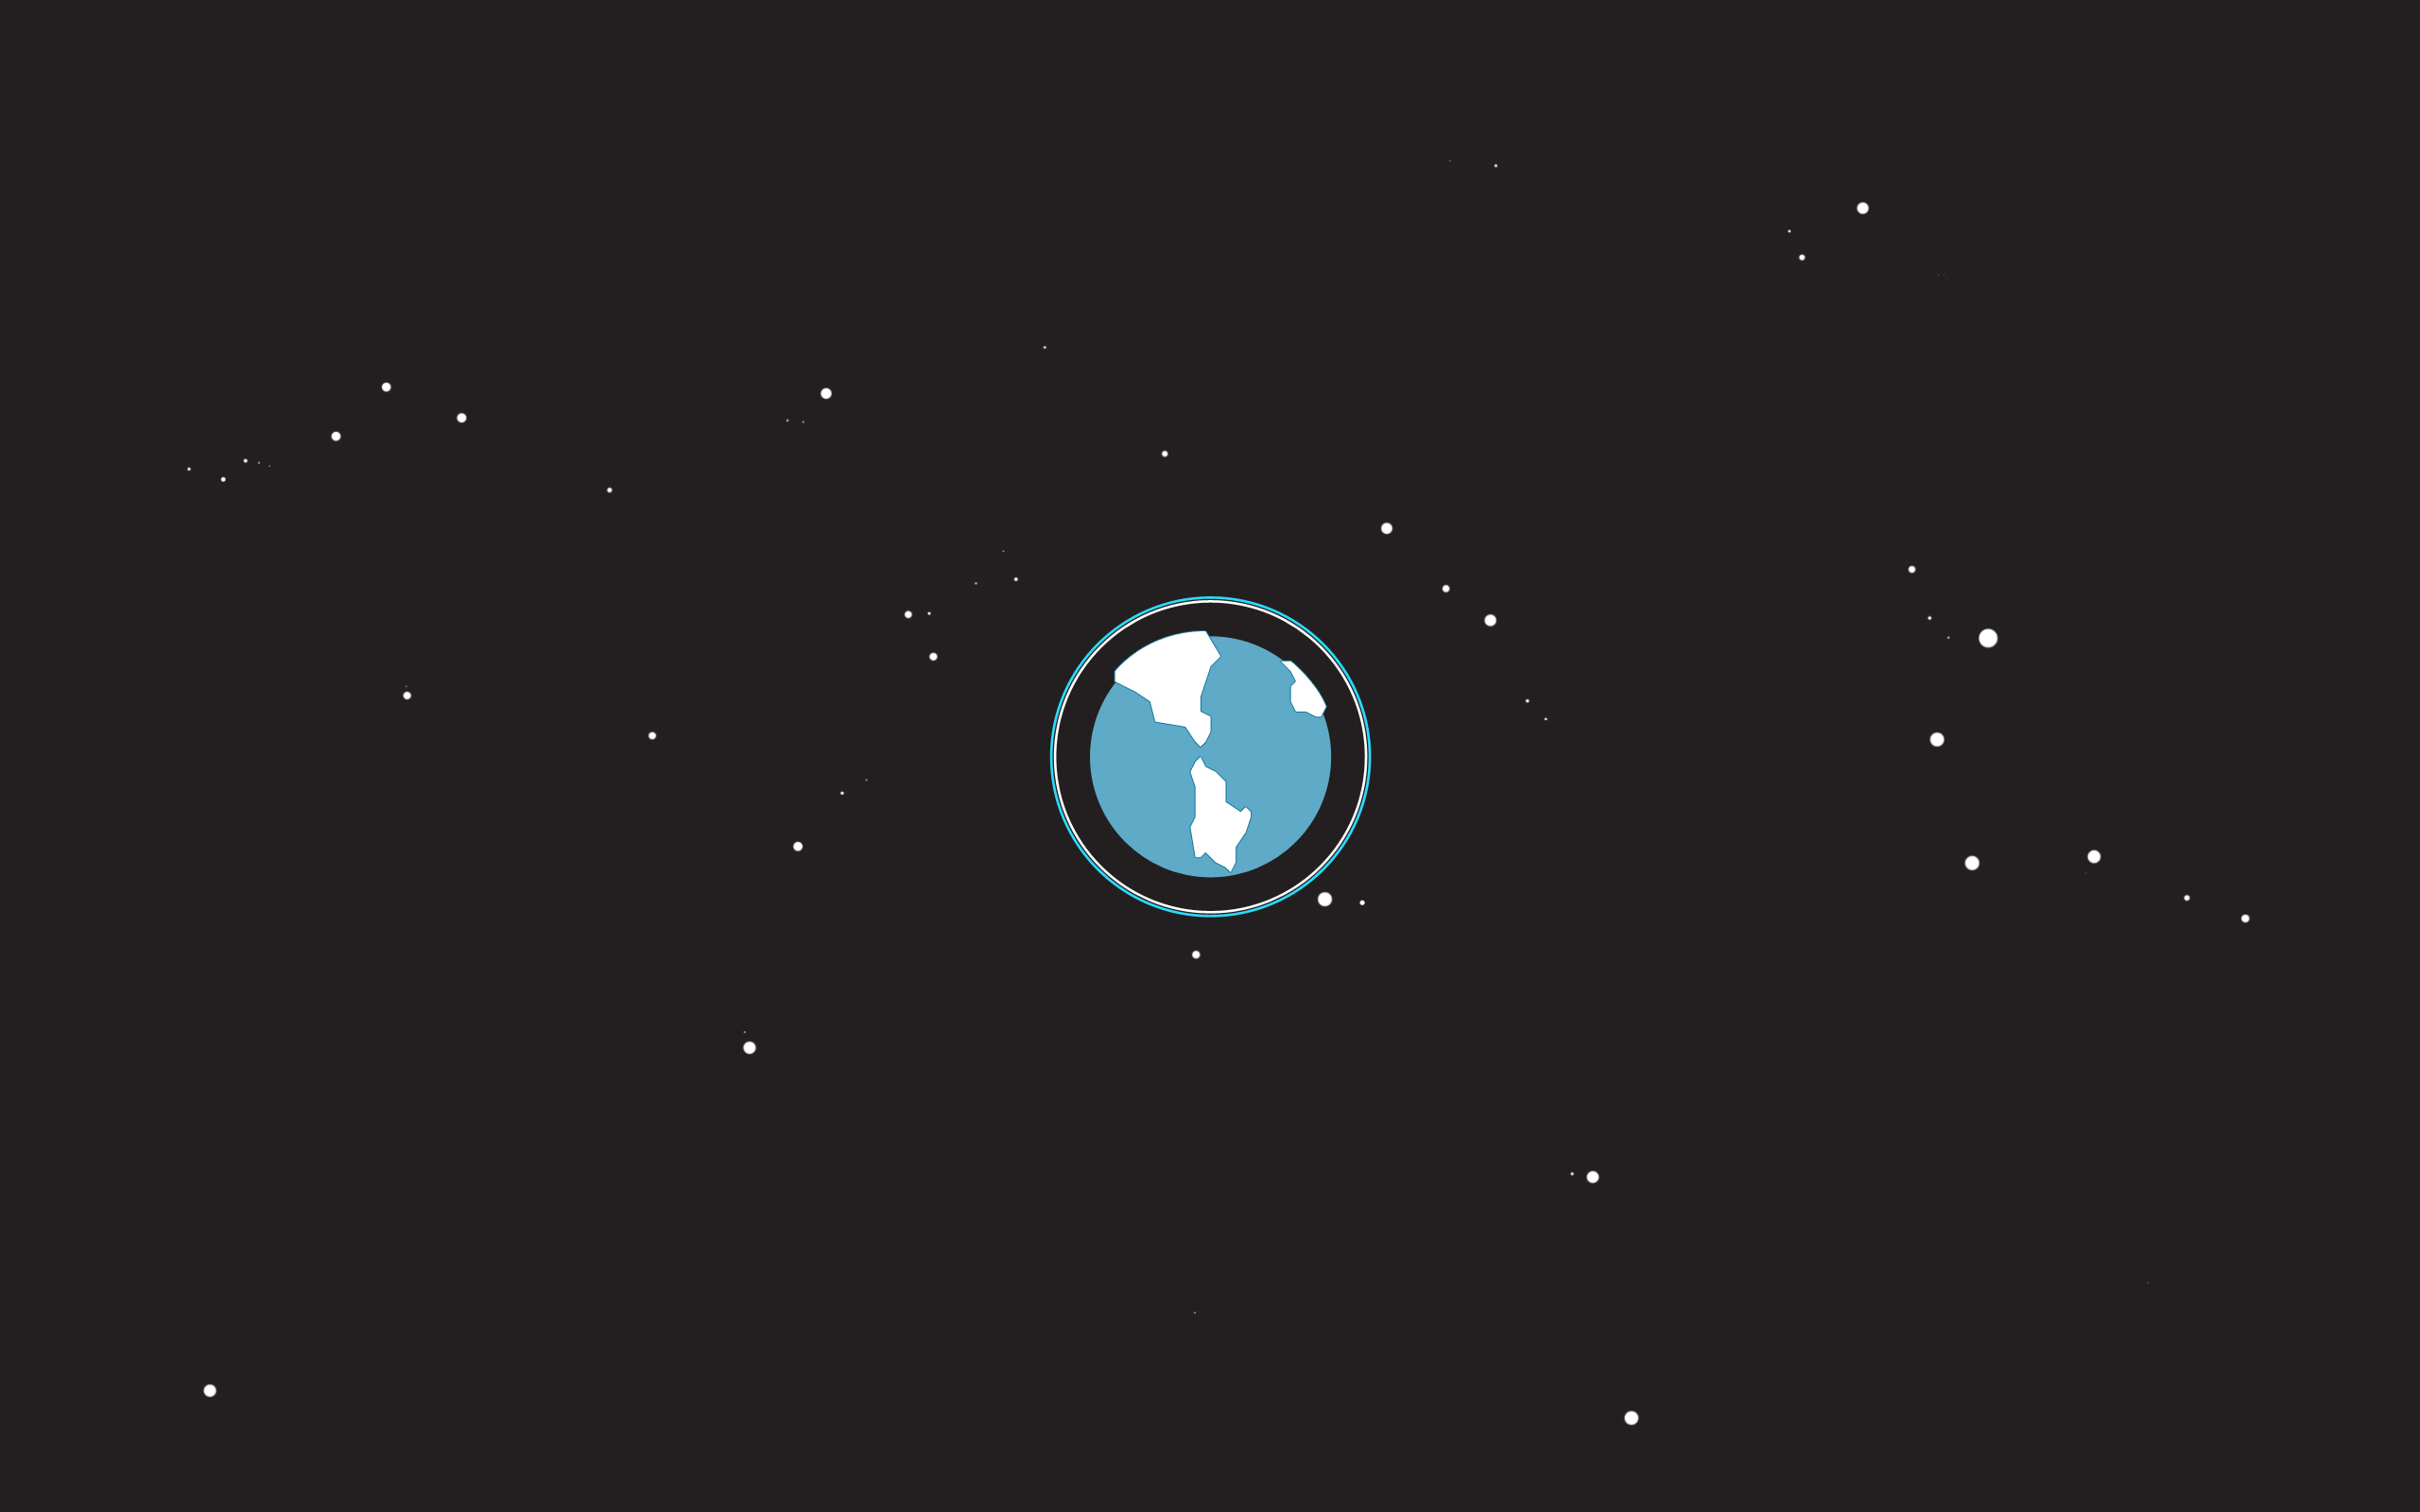 Simple Space Wallpaper  2560x1600 #34607